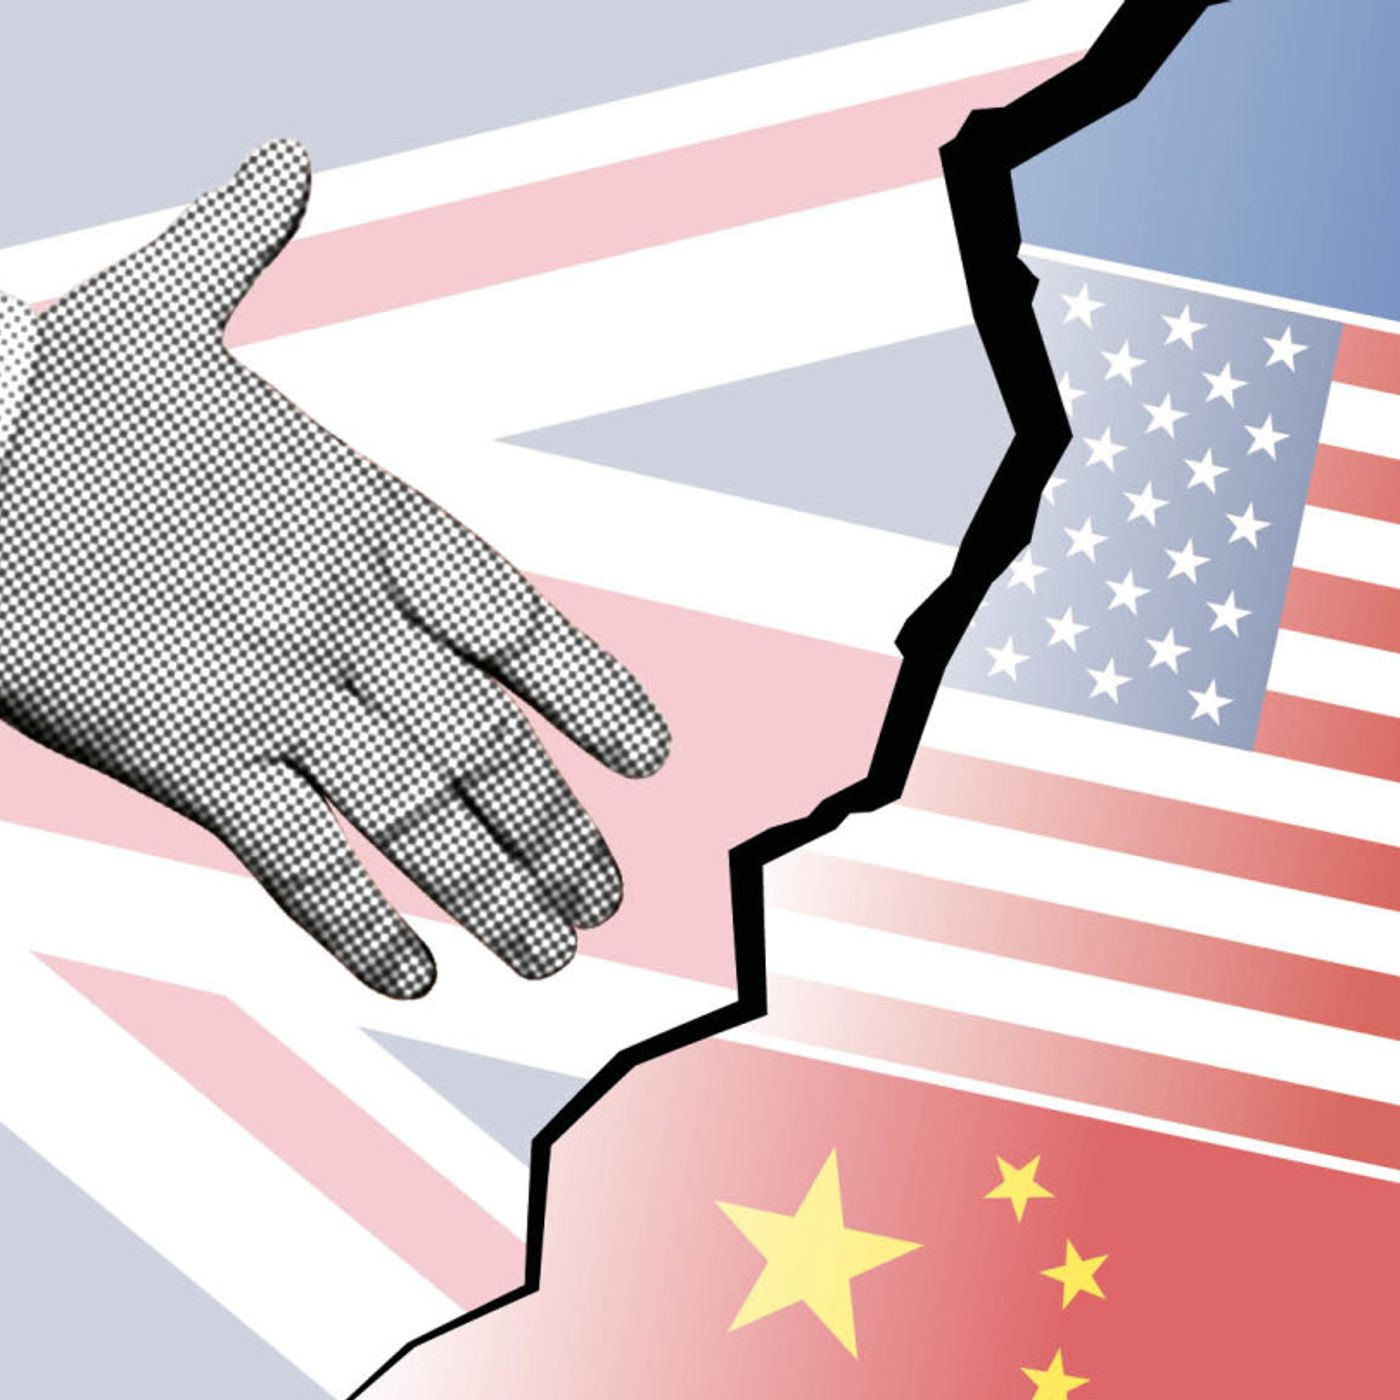 Brexit's Trade & Defense Remains US Shaped